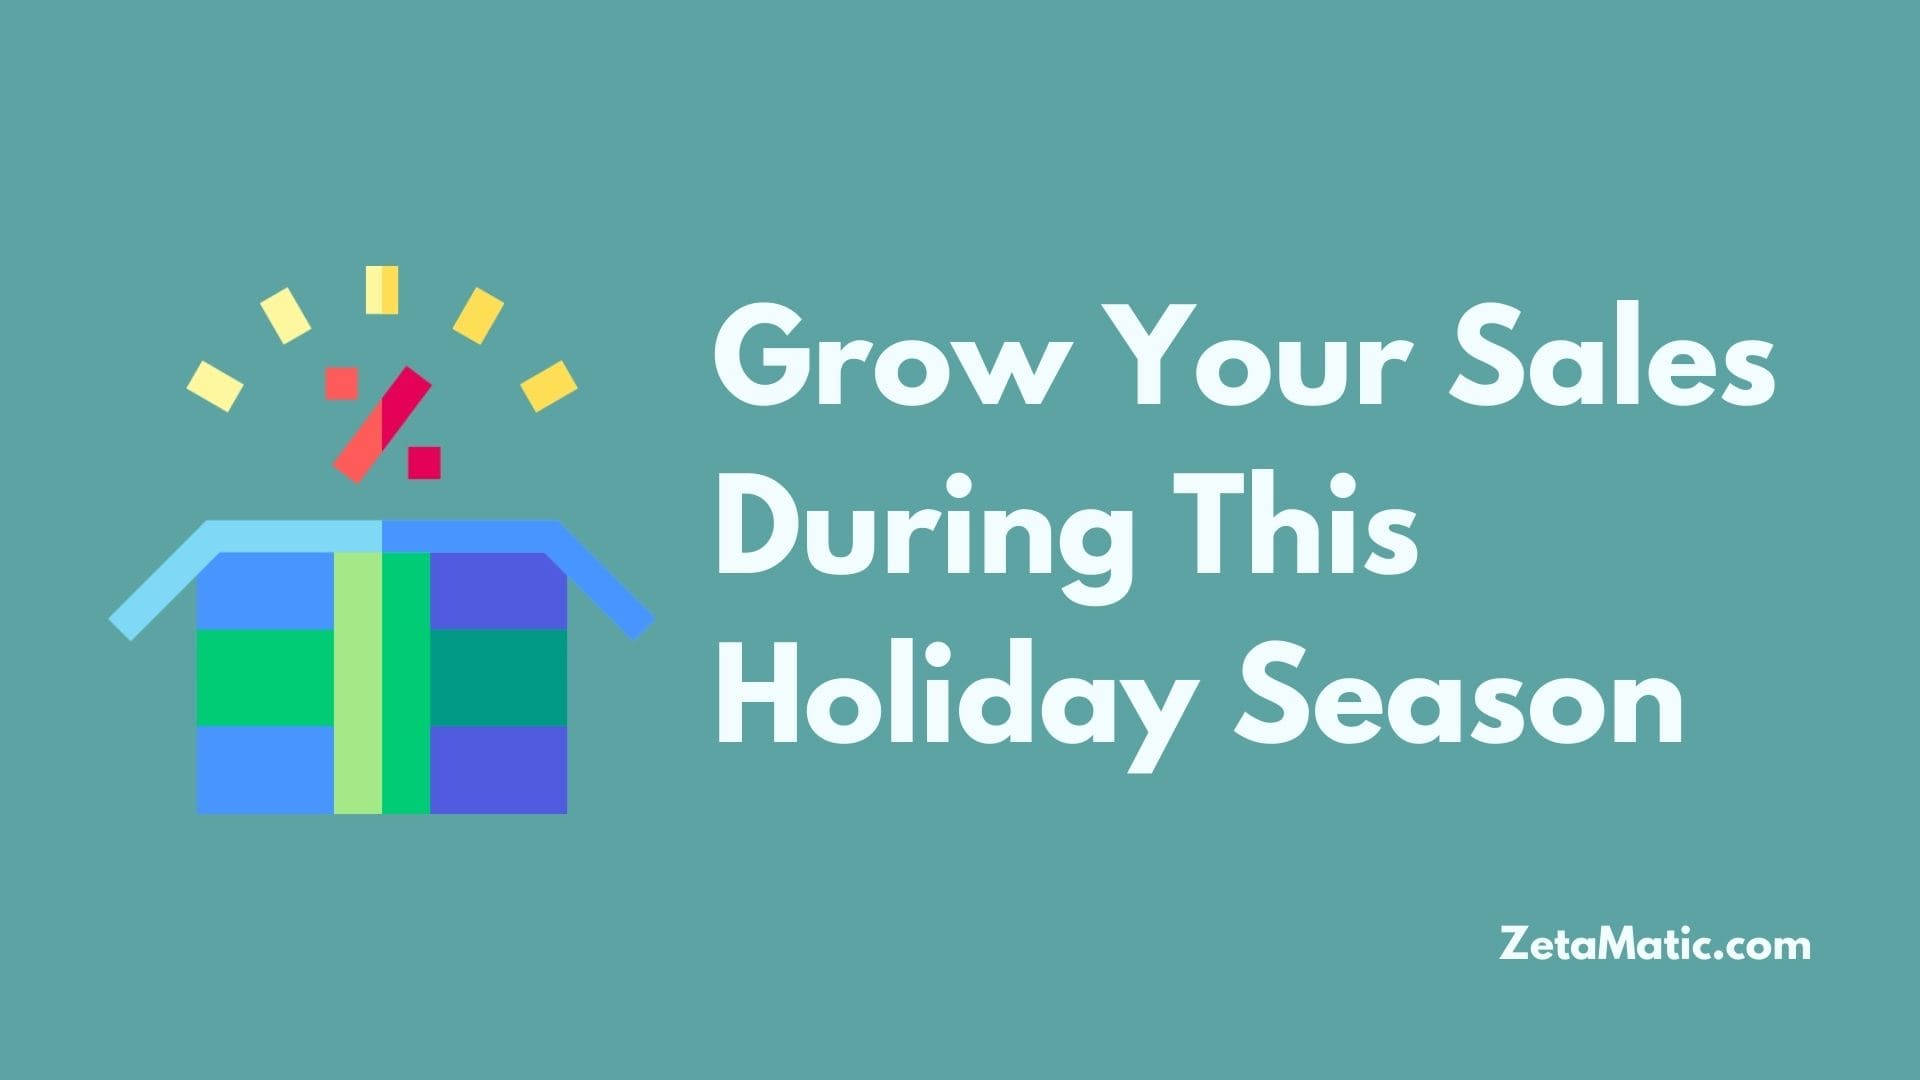 Grow Your Sales During This Holiday Season